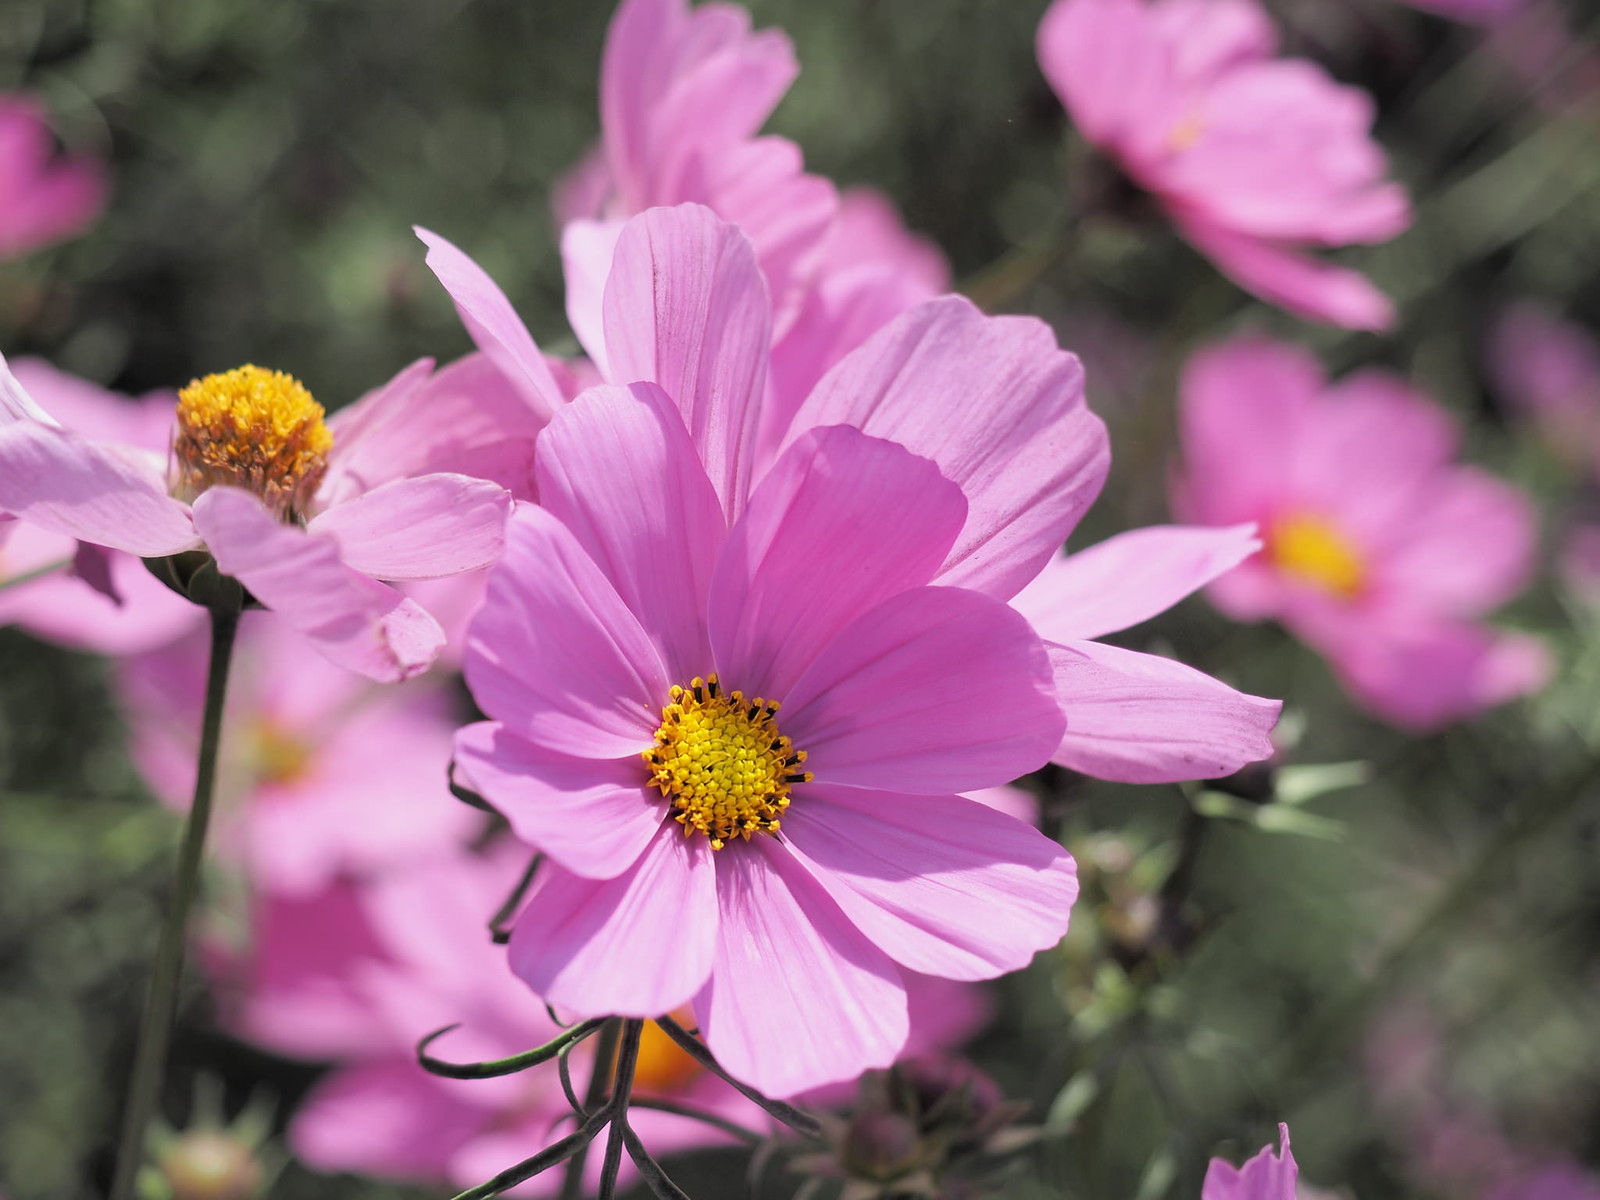 Cosmos bipinnatus, commonly called the garden cosmos or Mexican aster